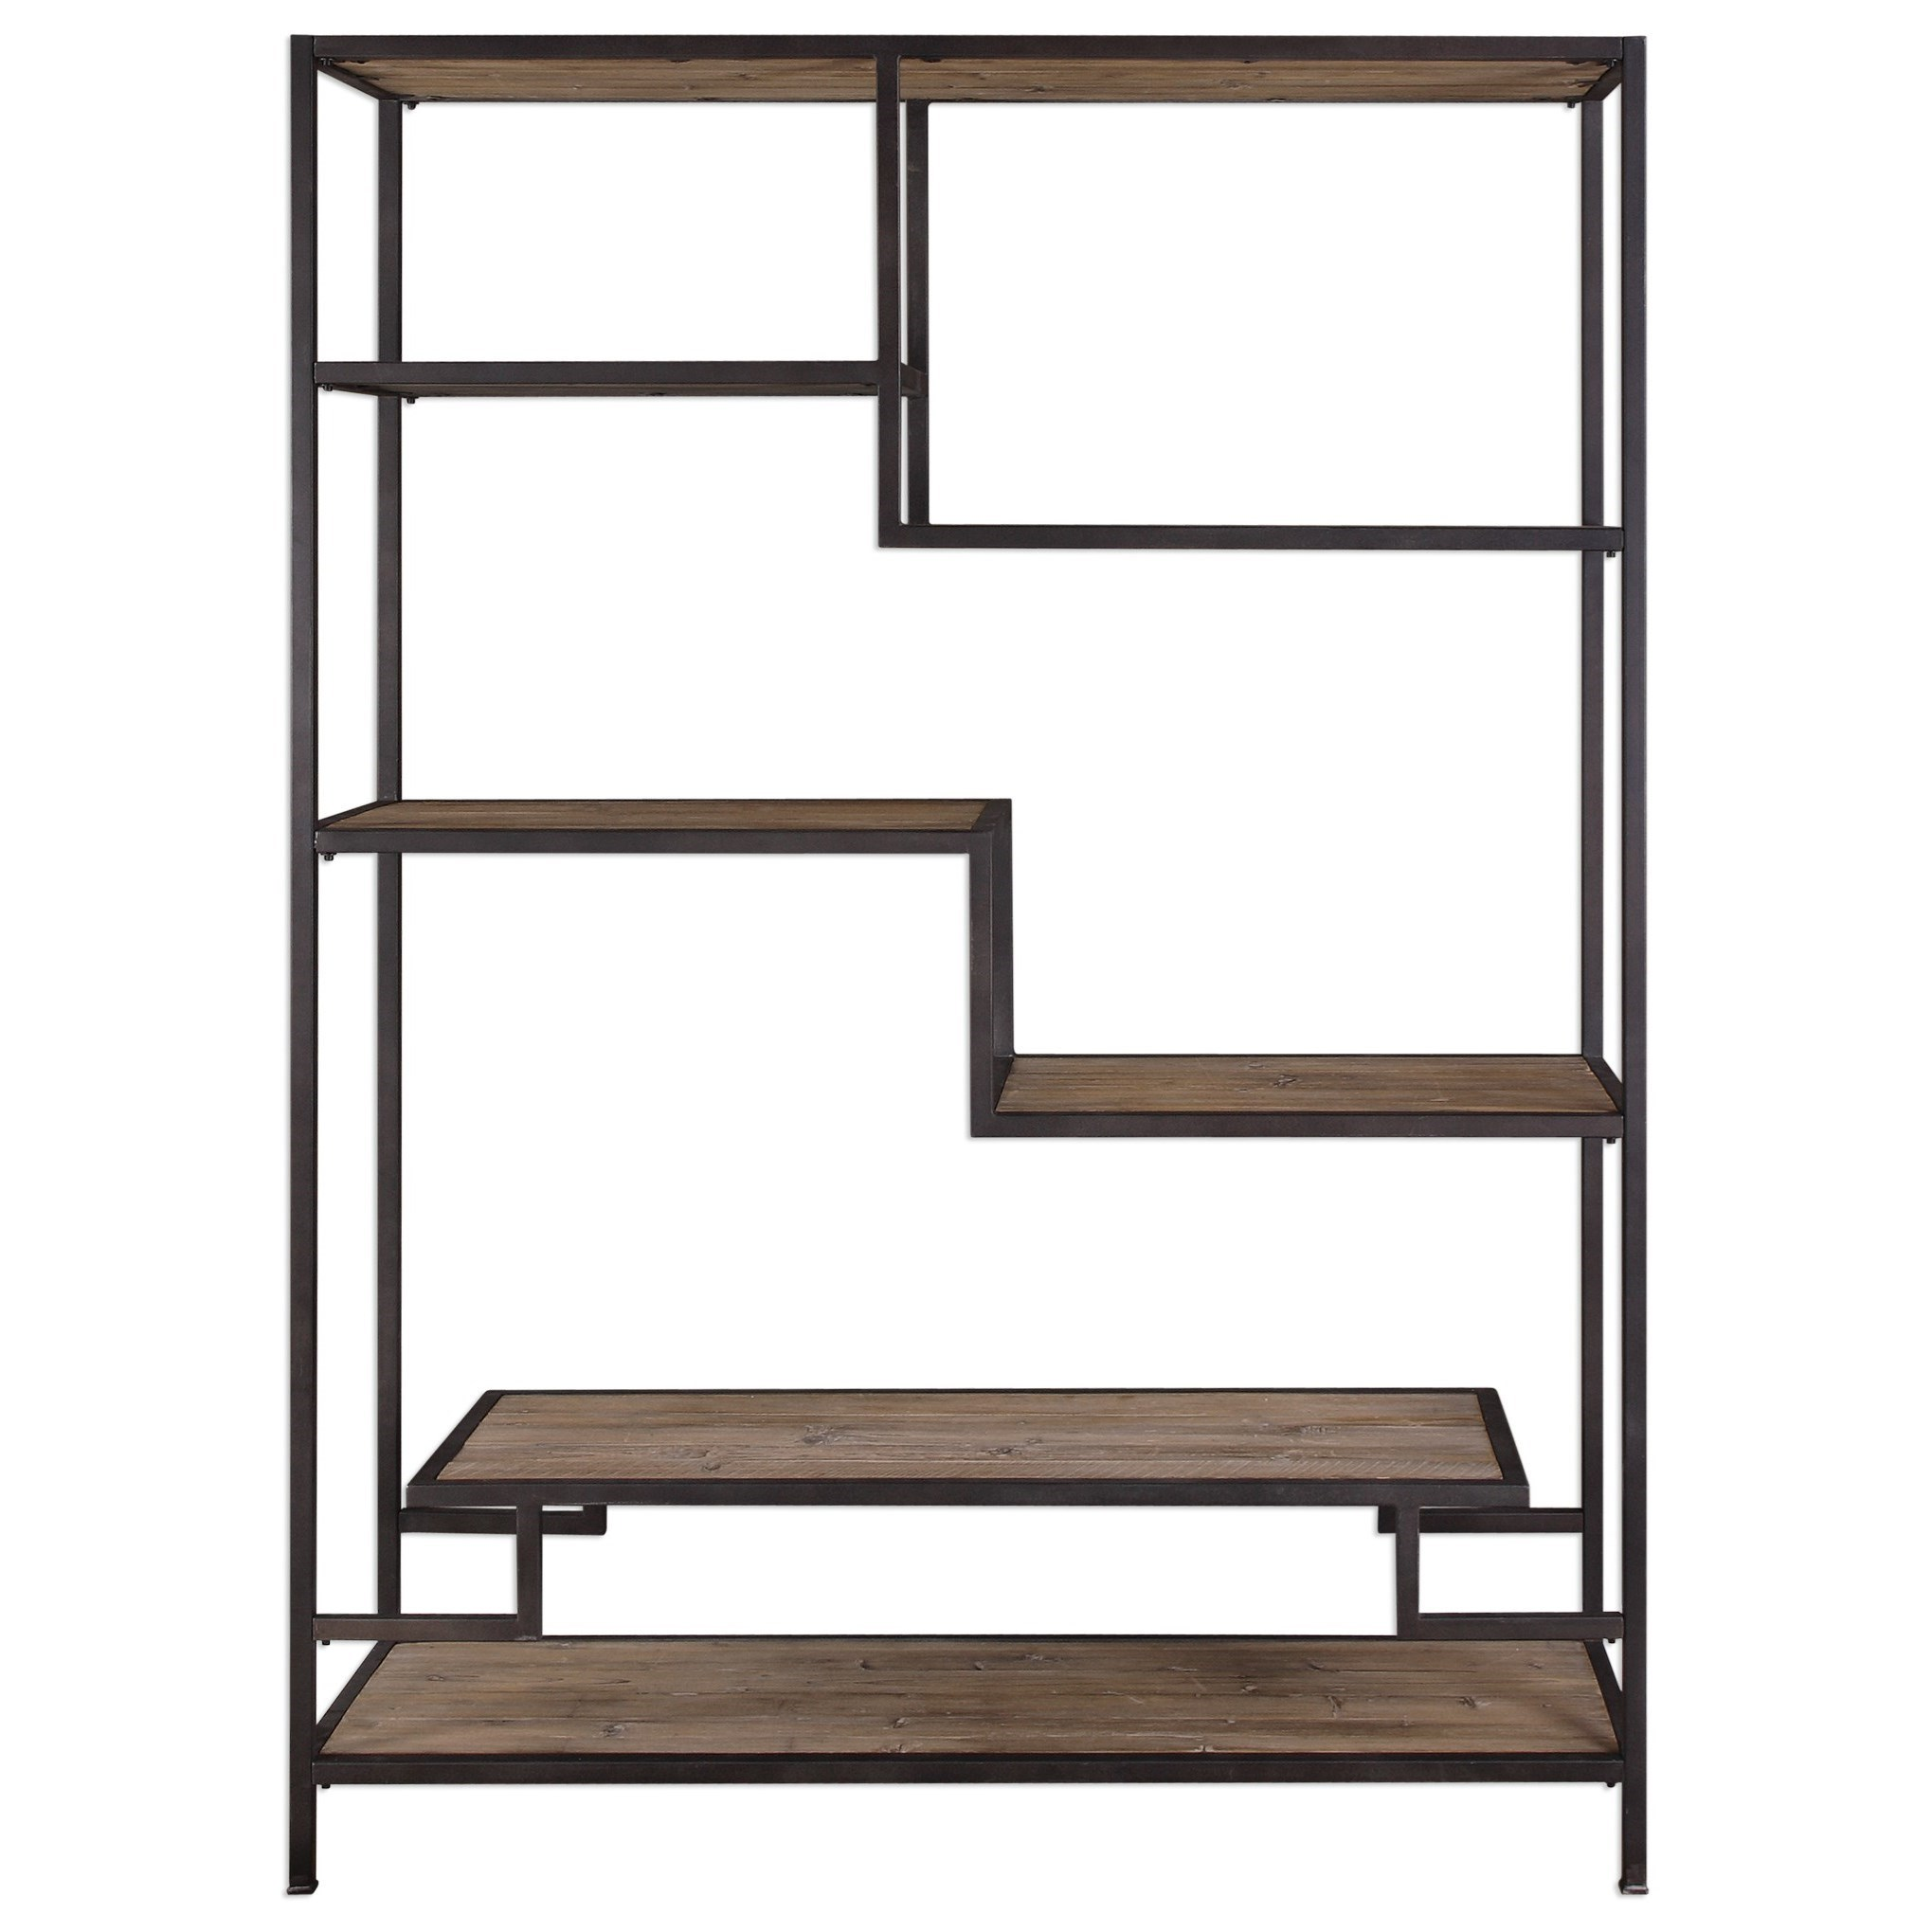 Accent Furniture - Bookcases  Sherwin Industrial Etagere by Uttermost at Goffena Furniture & Mattress Center